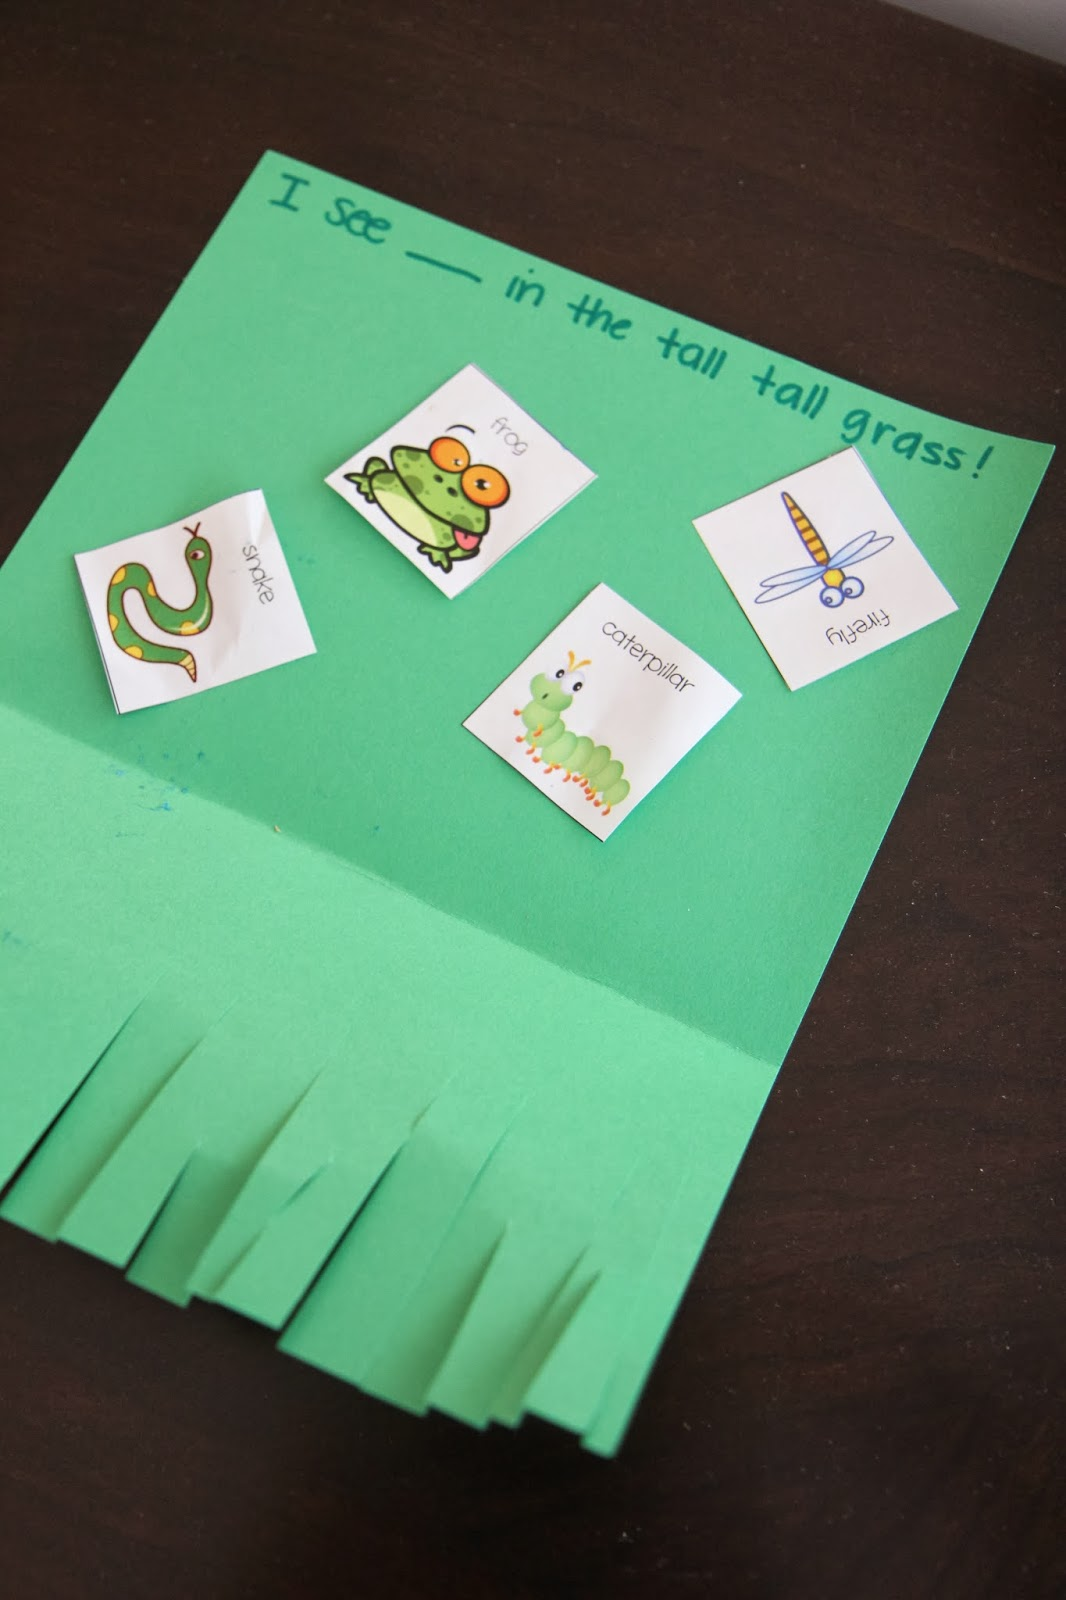 Toddler Approved Crafts Amp Activities To Do Along With In The Tall Tall Grass By Denise